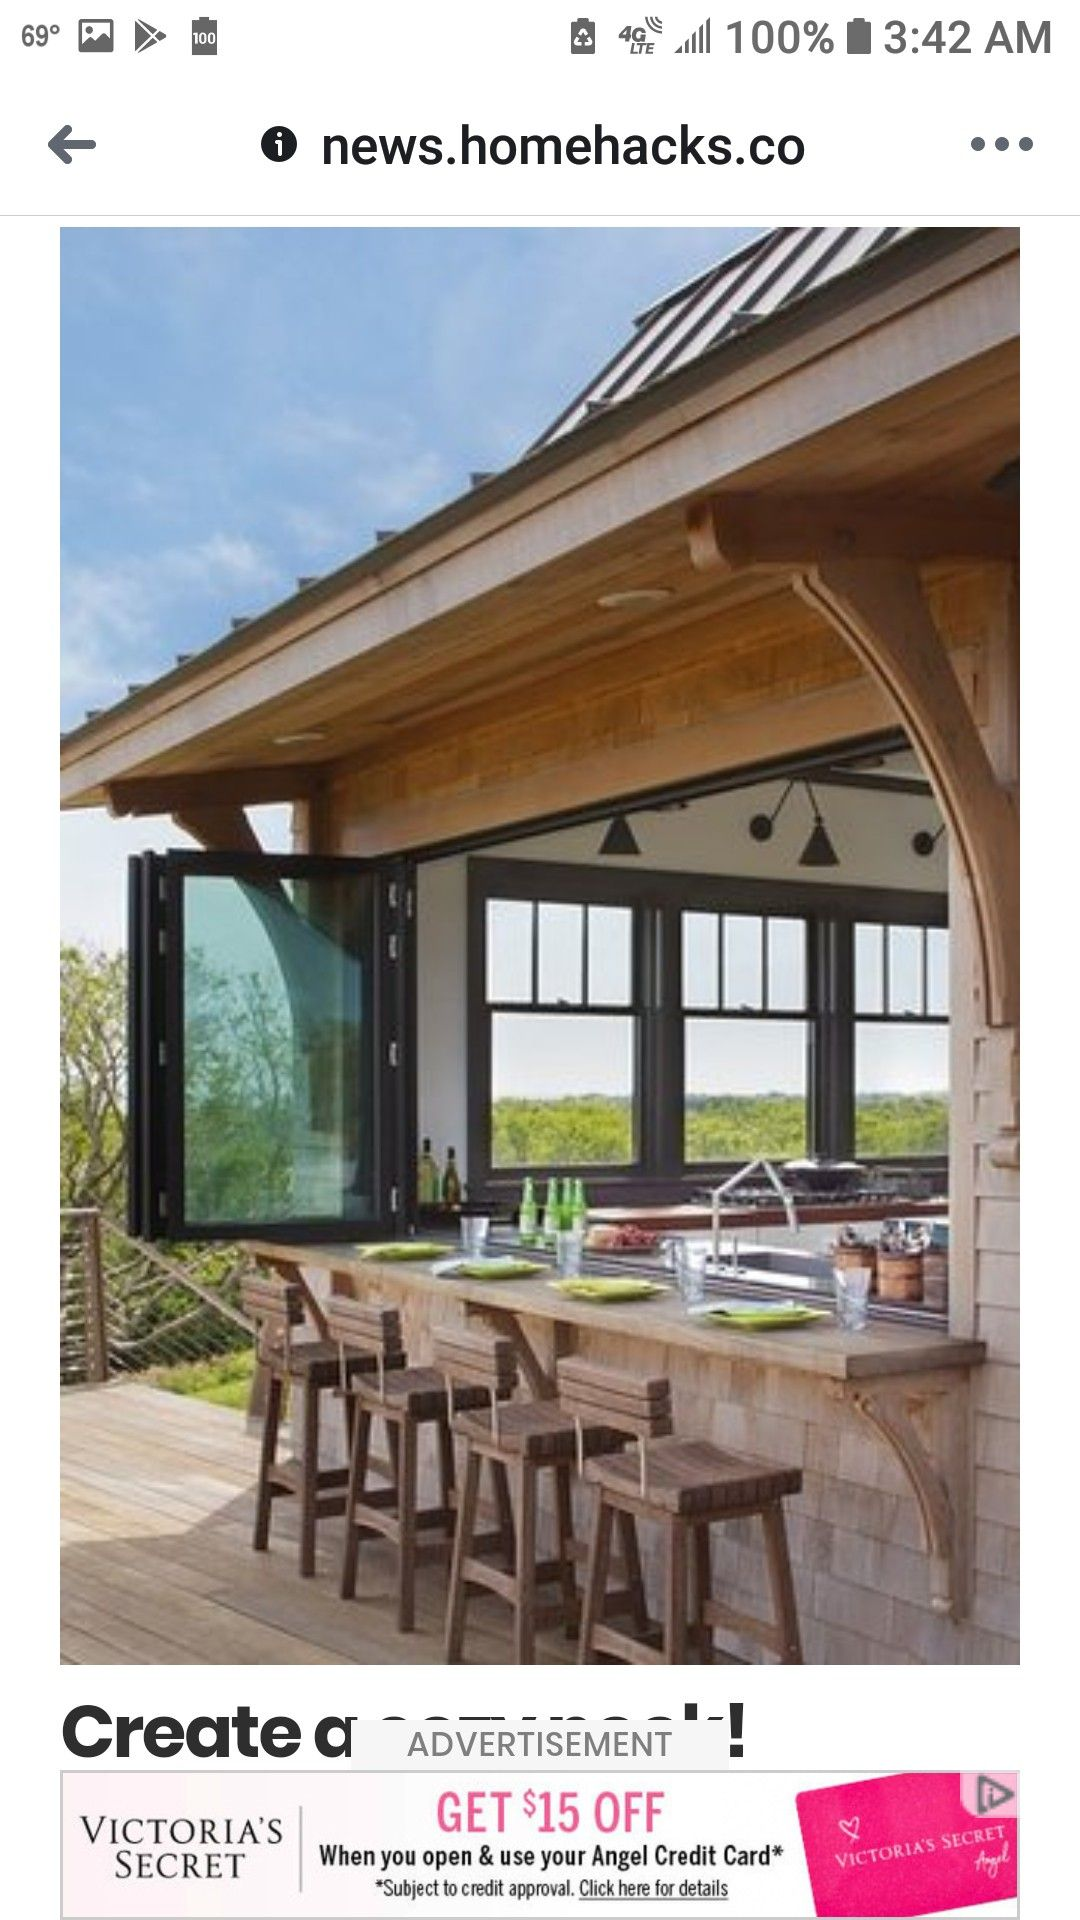 Image by Cindy Abernathy on lake house Outdoor kitchen